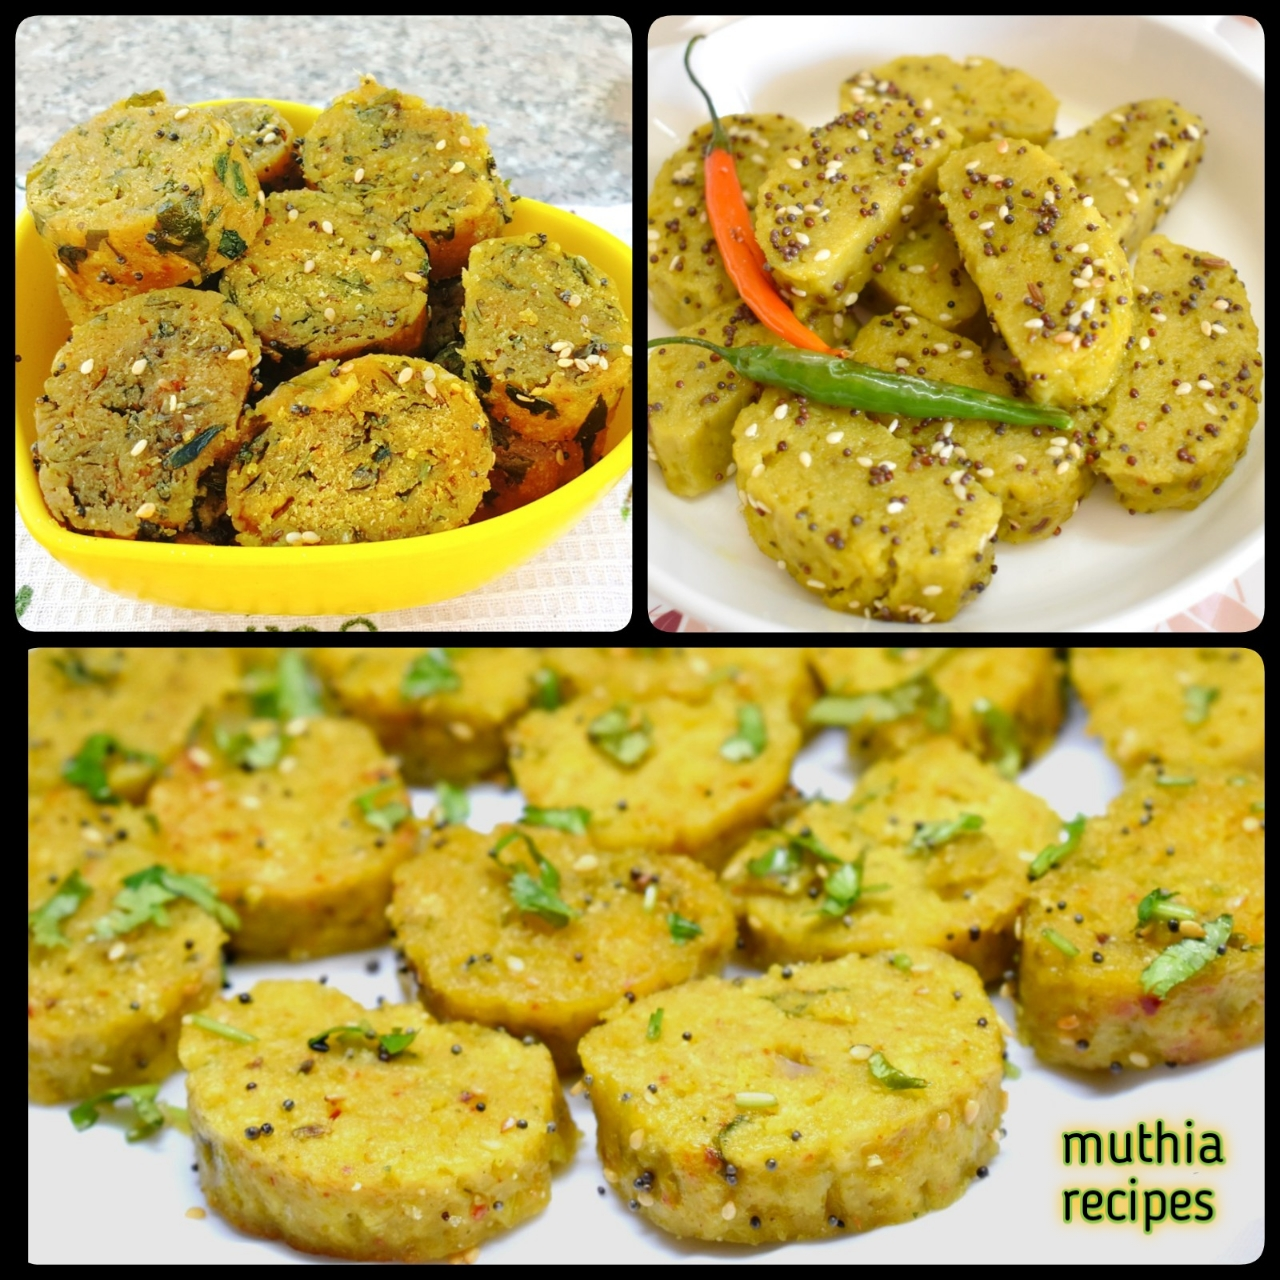 muthia recipes